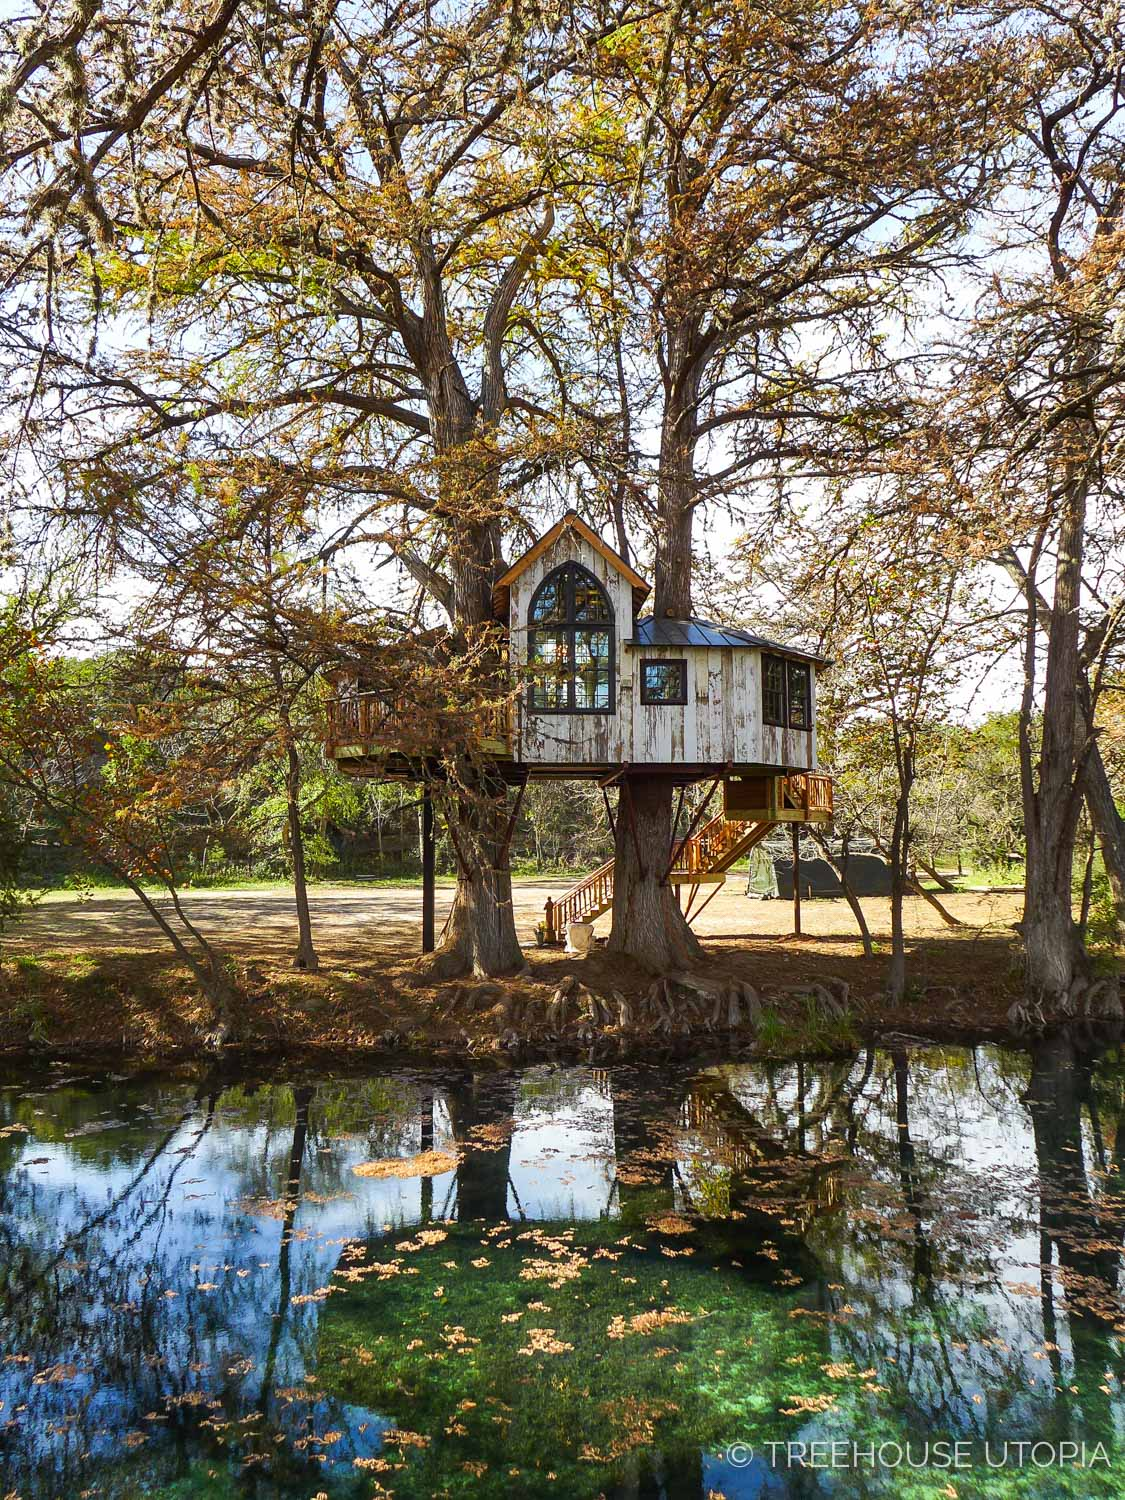 Stay overnight at Treehouse Utopia, Texas